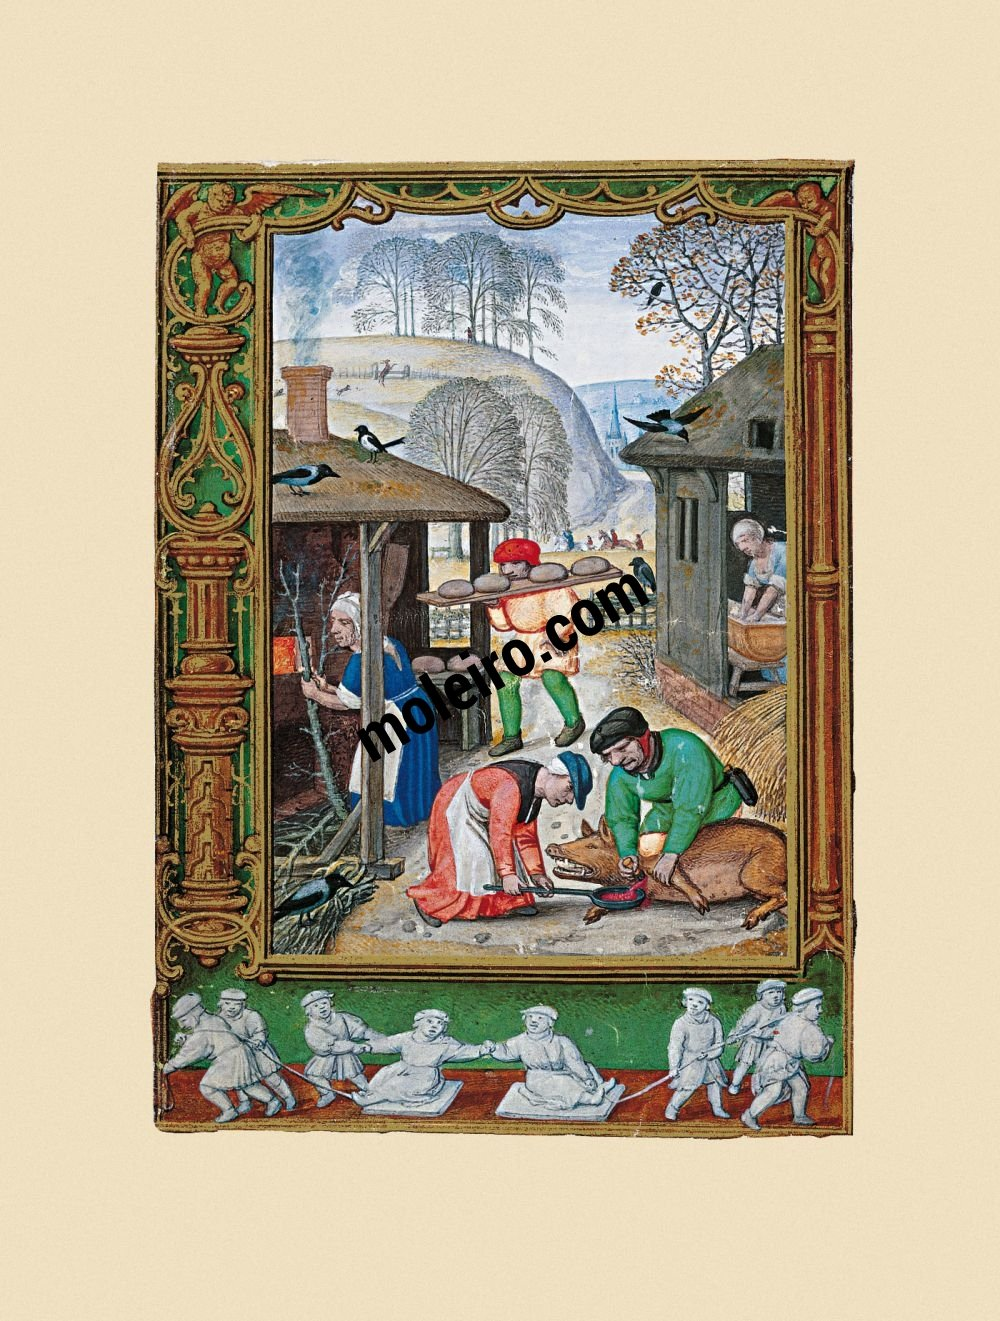 The Golf Book (Book of Hours) f. 29v, December, pig slaying